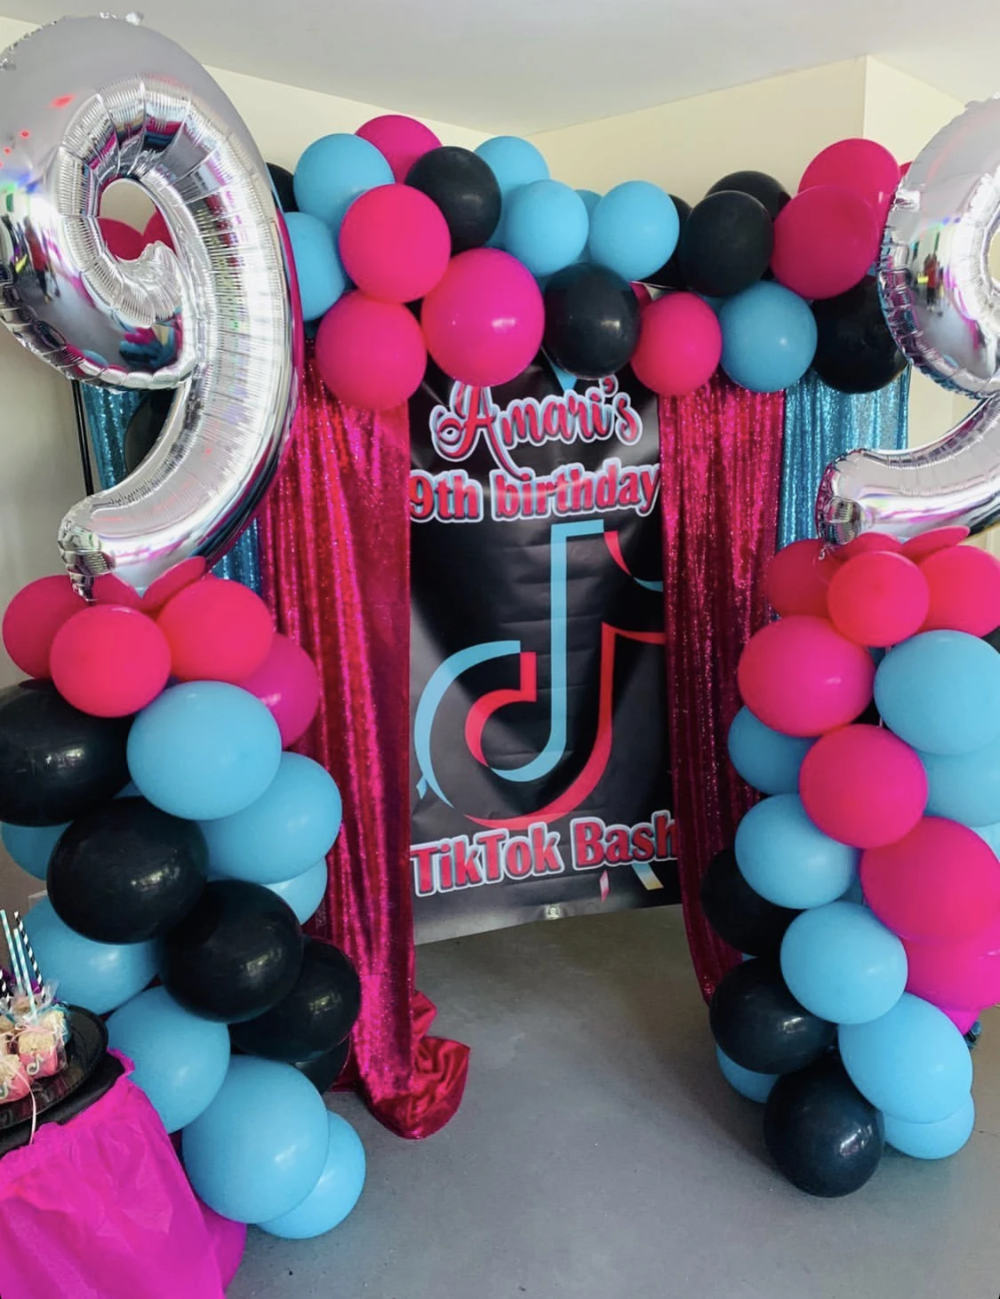 1 Tik Tok Backdrop Personalized Step Repeat Designed Printed Ship Banners Birthday Party For Teens 12th Birthday Party Ideas Birthday Surprise Party